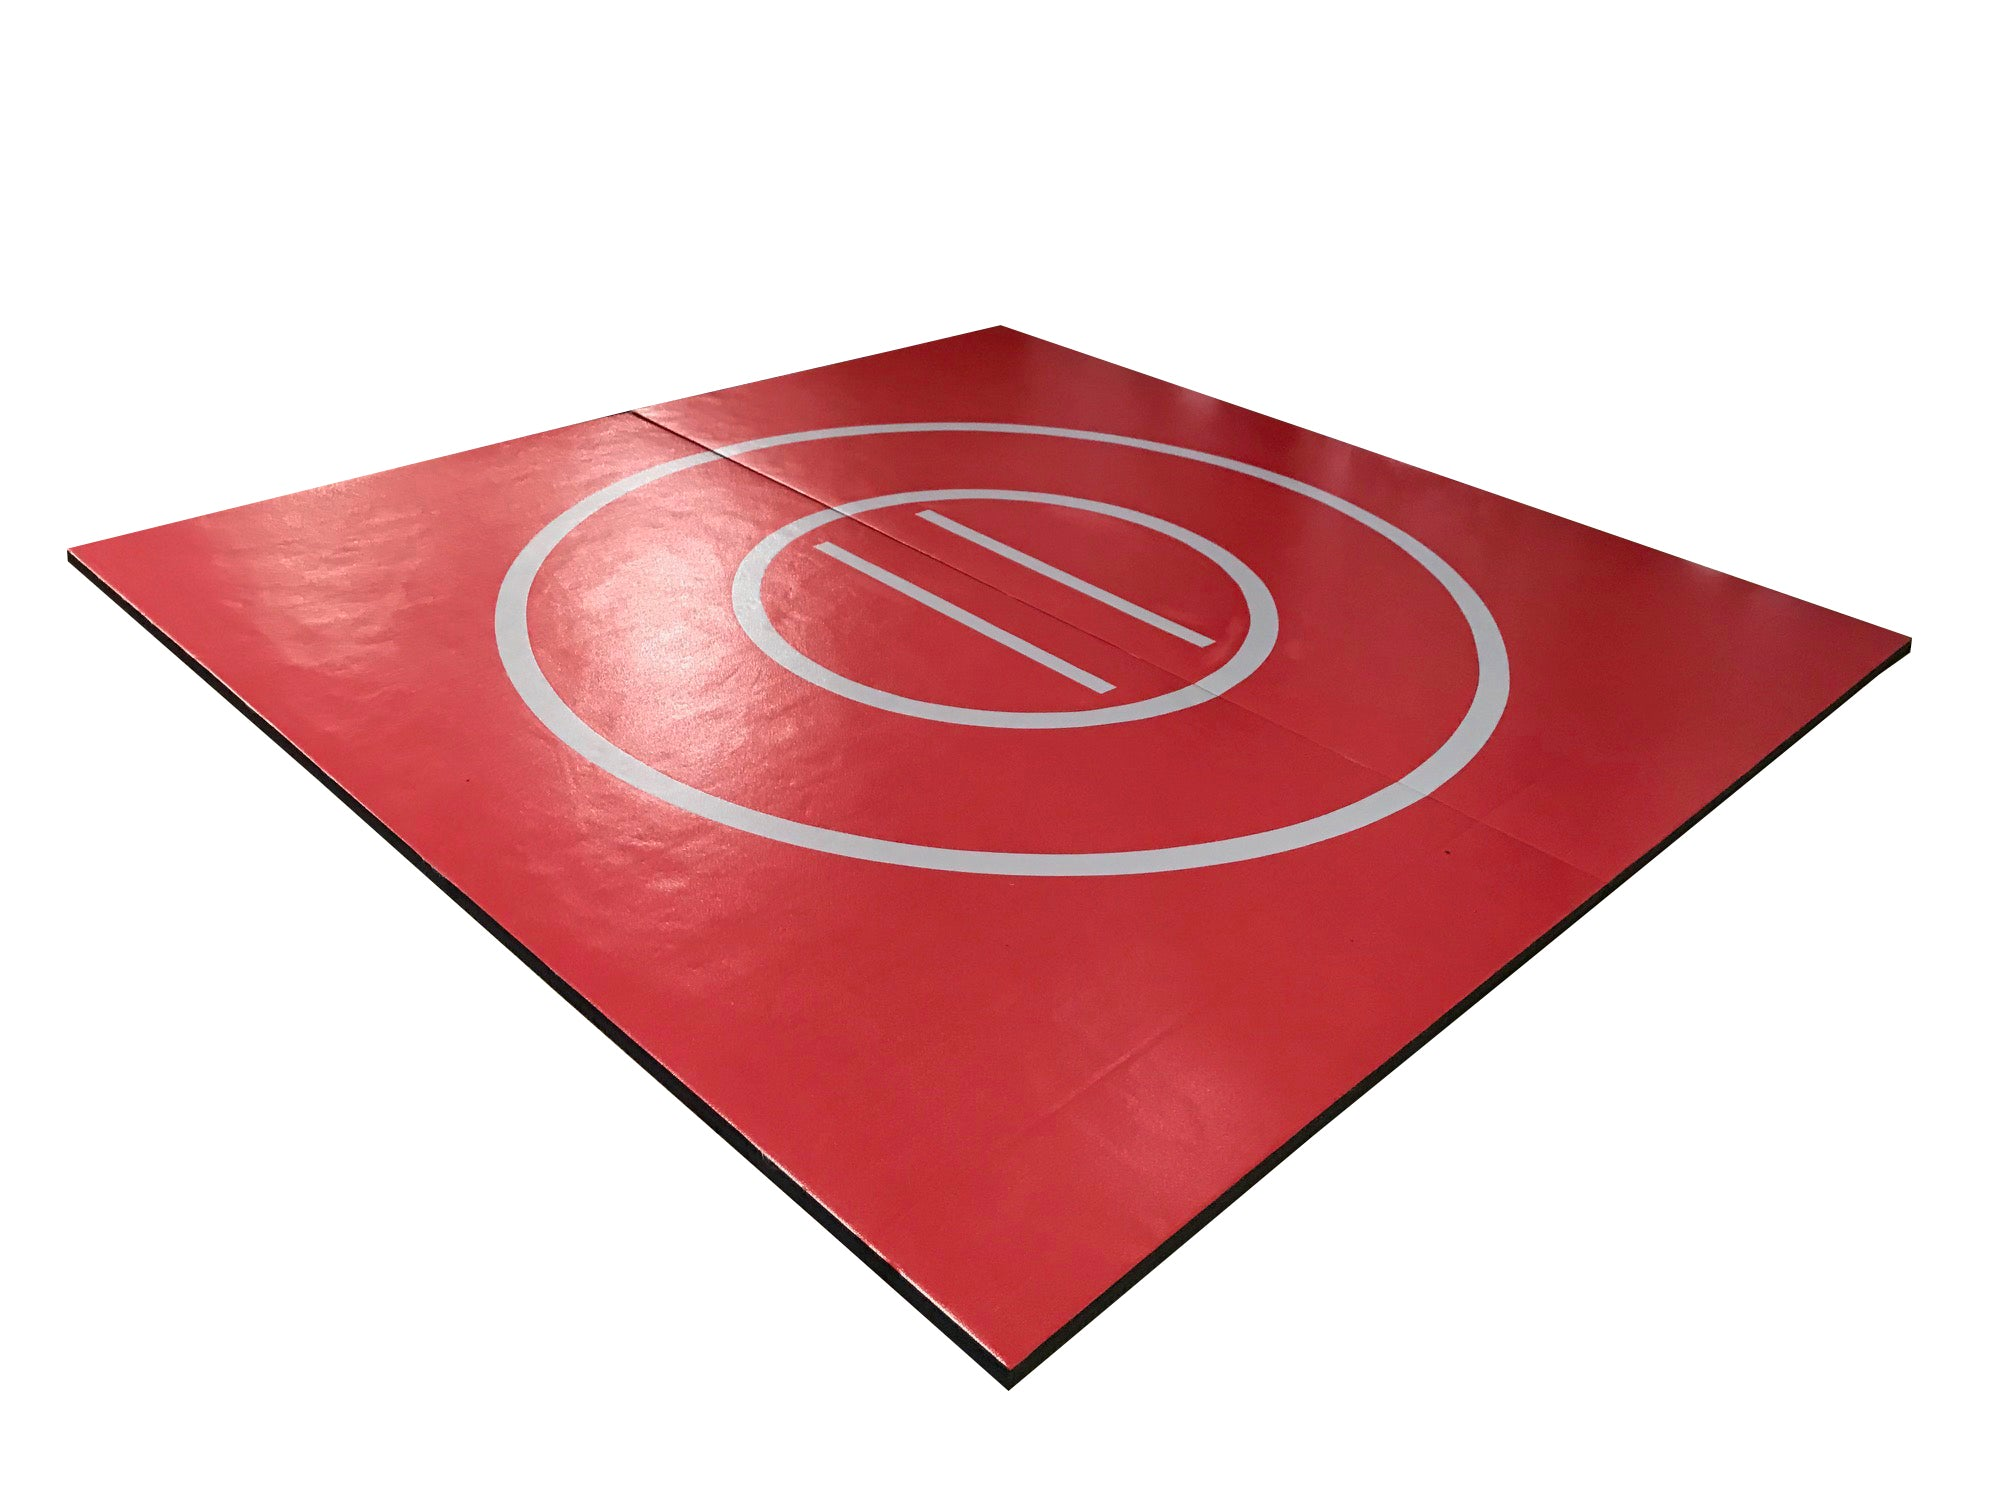 "8' x 8' x 1 3/8"" Maroon and Gray Roll-Up Wrestling Mat"